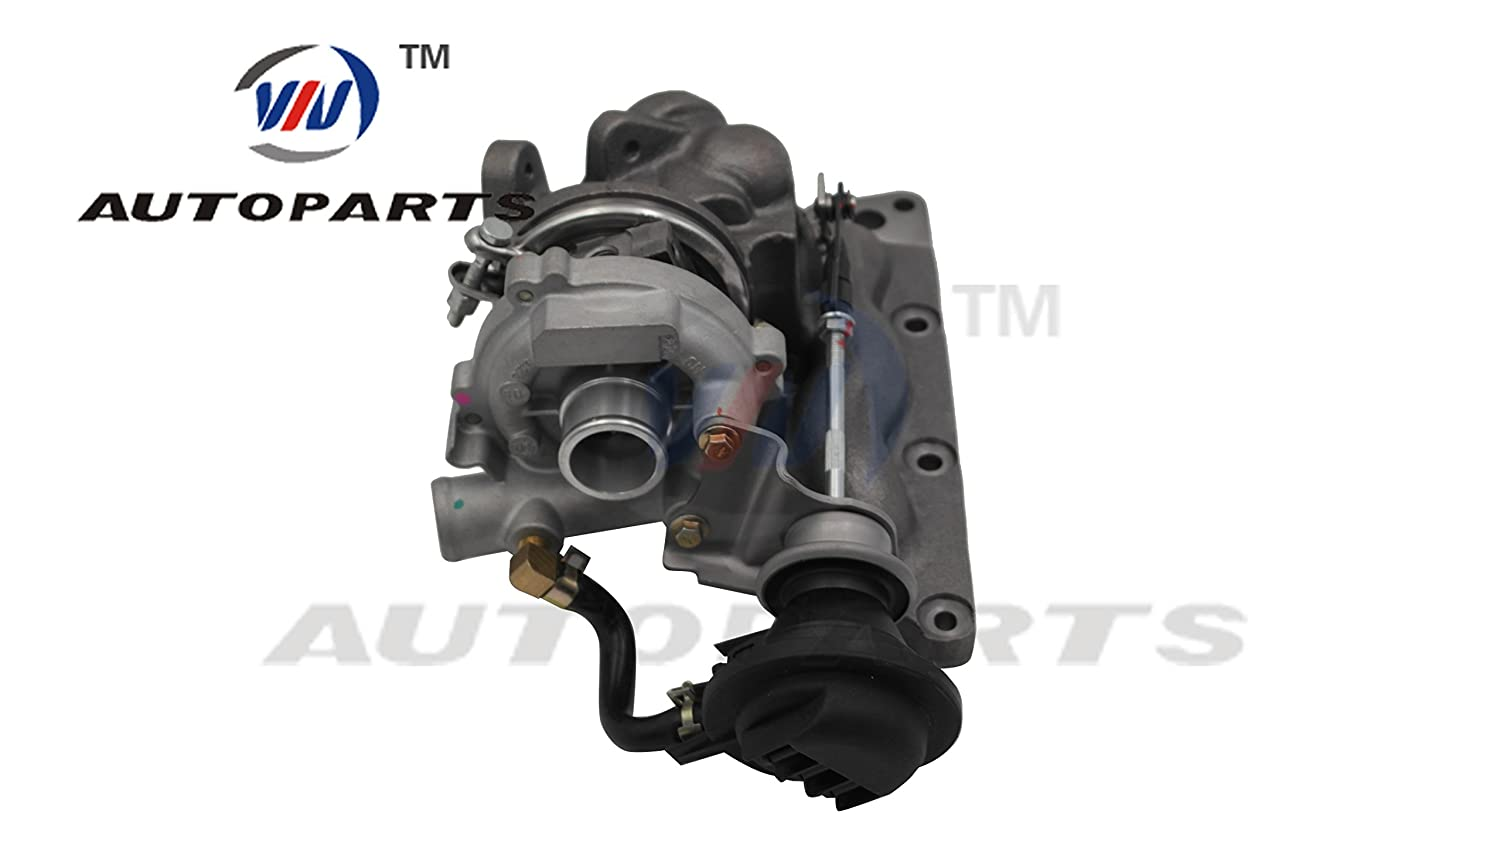 Billet Turbocharger 727211-5001S for Smart-MCC M160 0.7L Gasoline Engine